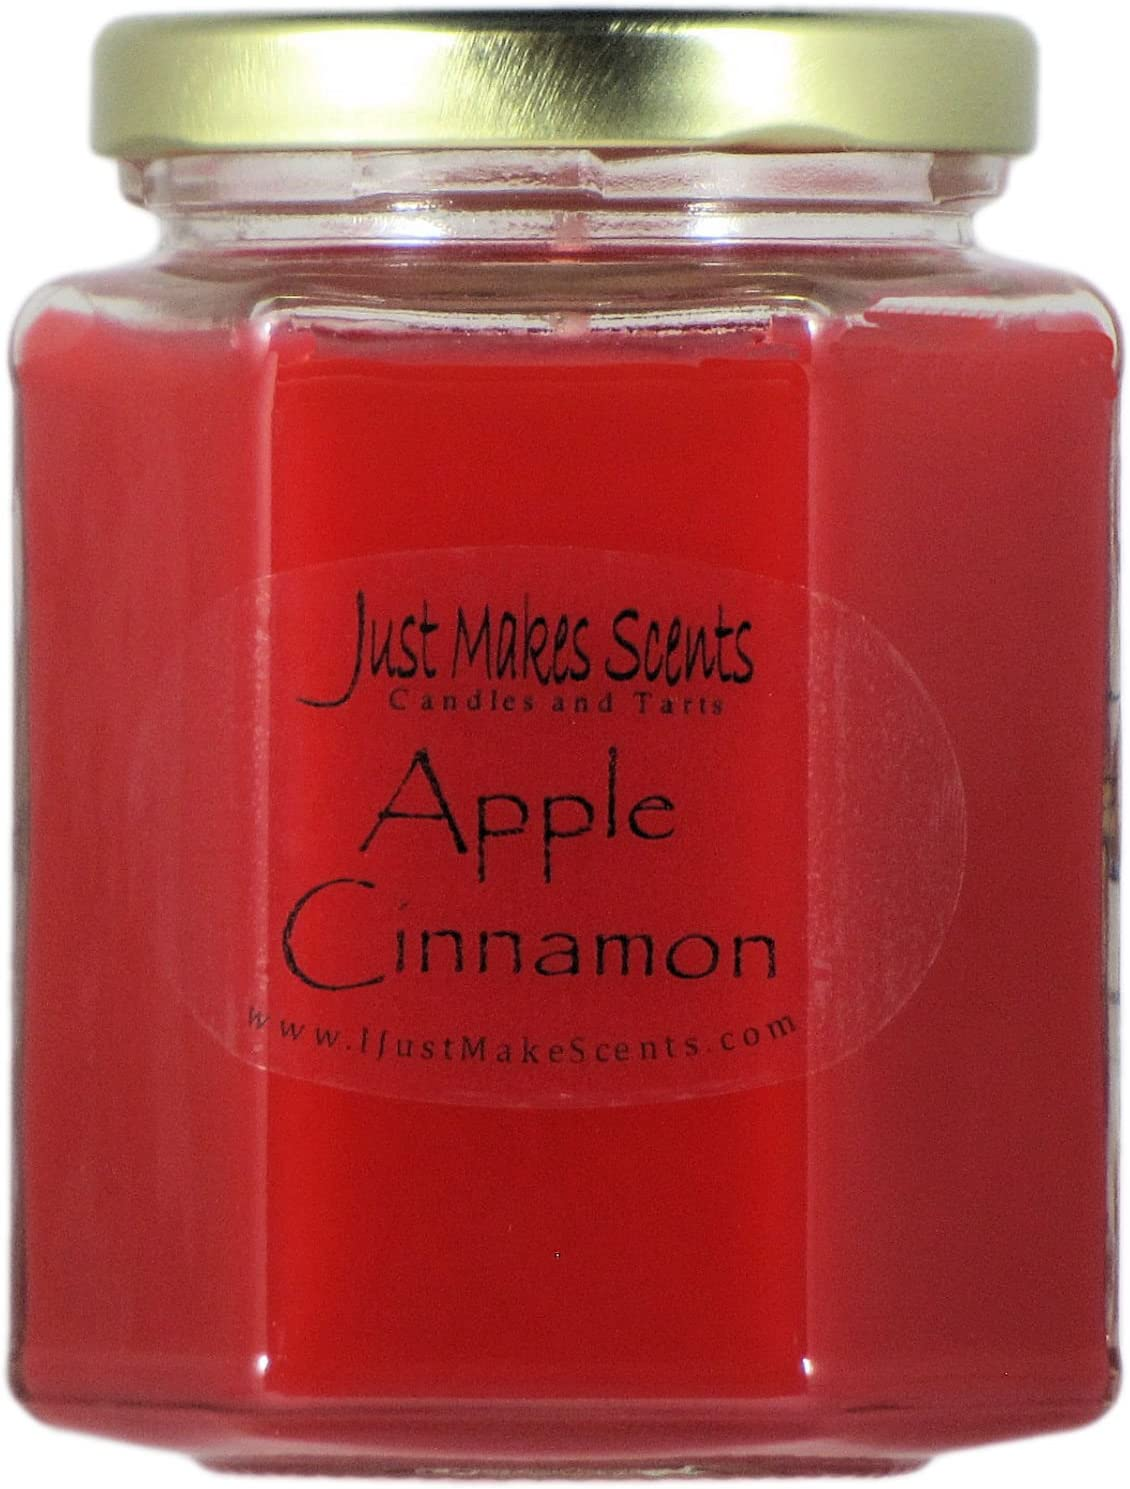 Just Makes Scents Apple Cinnamon Scented Candles | Amazing Fall Fragrance | Hand Poured in The USA (8 oz)